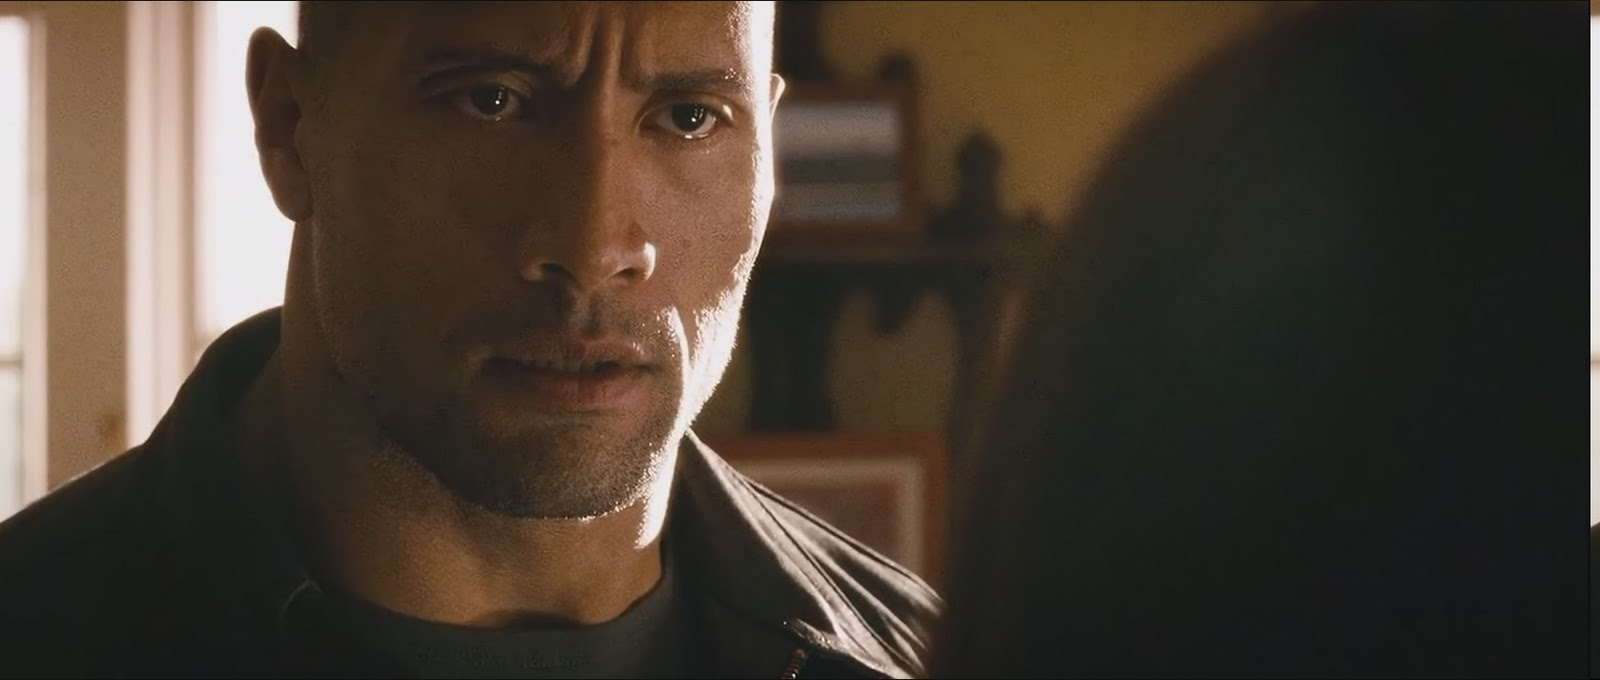 MovieScreenshots: Faster 2010 Movie Pictures